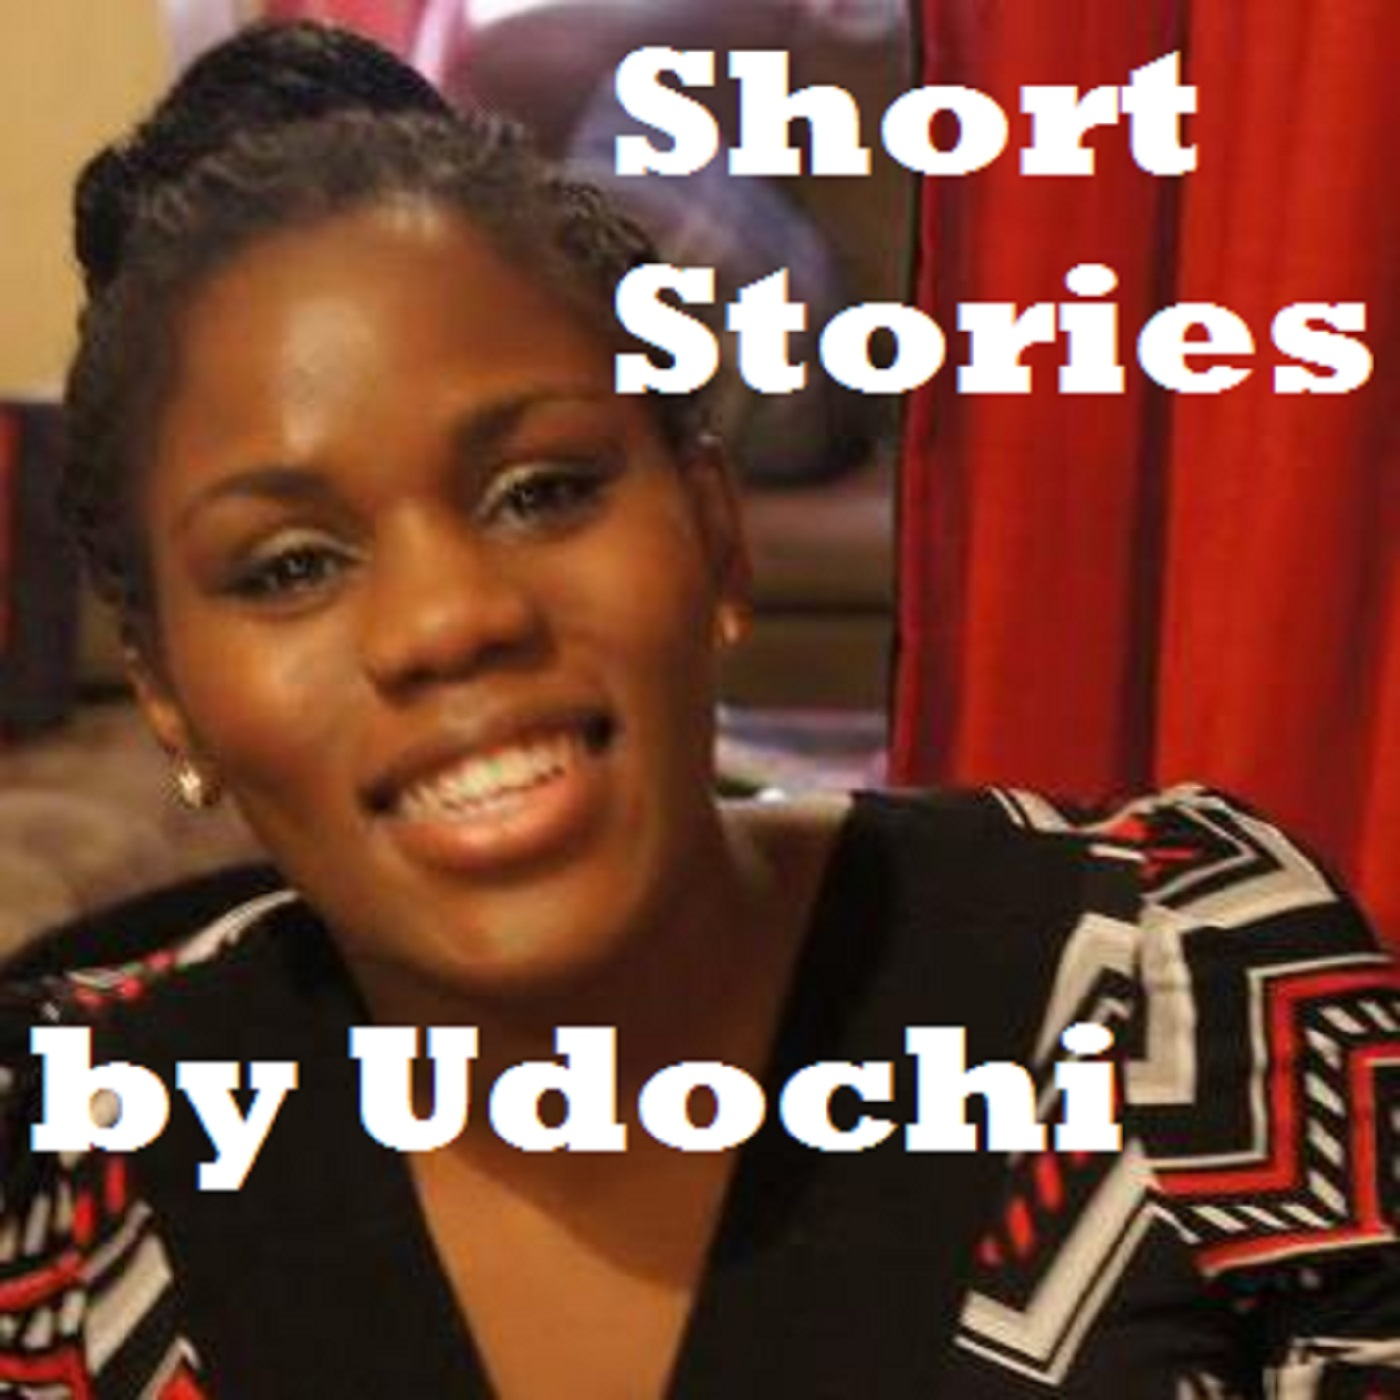 Short Stories by Udochi